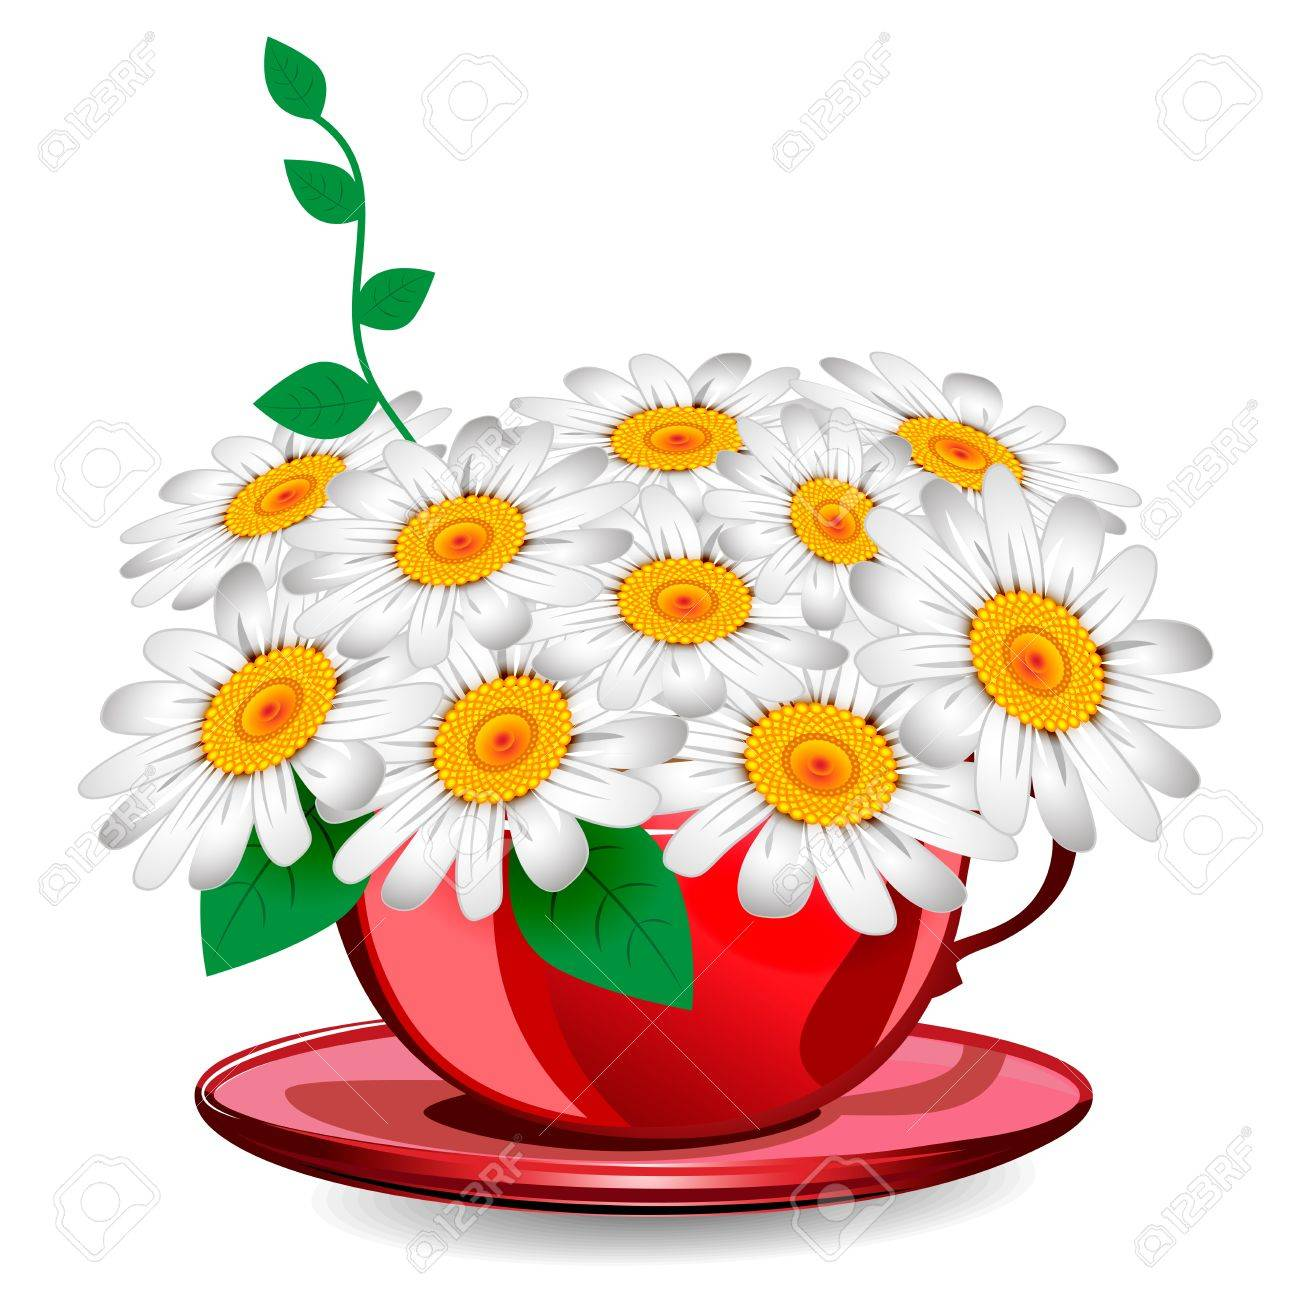 Herbal chamomile in a red cup Stock Vector - 17999465